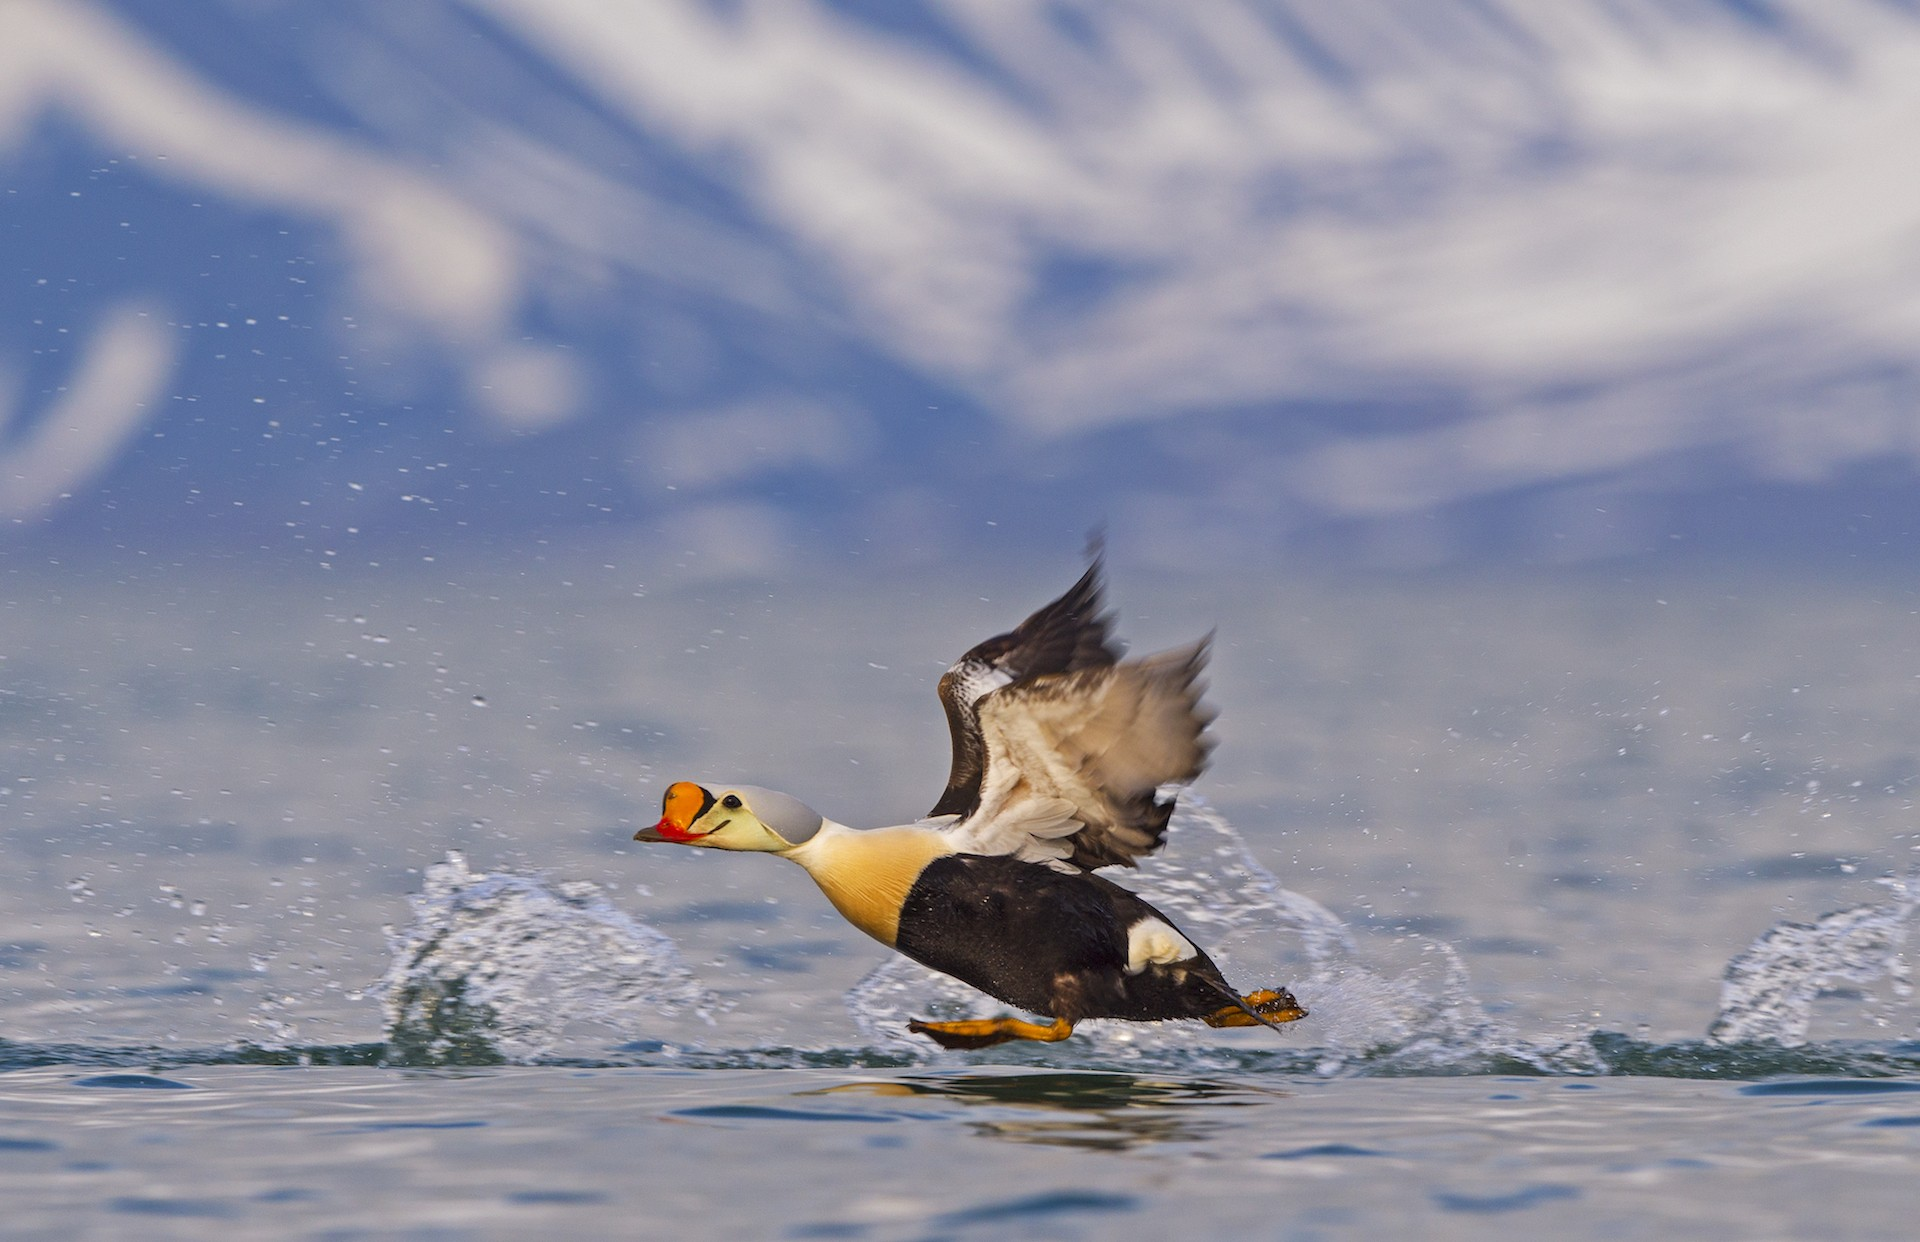 The king eider is much harder to spot, and one of the most coveted bird sightings in Svalbard. They spend most of their life at sea, except during breeding season when they nest near freshwater lakes and ponds. They are skilled swimmers and can dive to depths of 50 metres while feeding.  Photo: Dhritiman Mukherjee